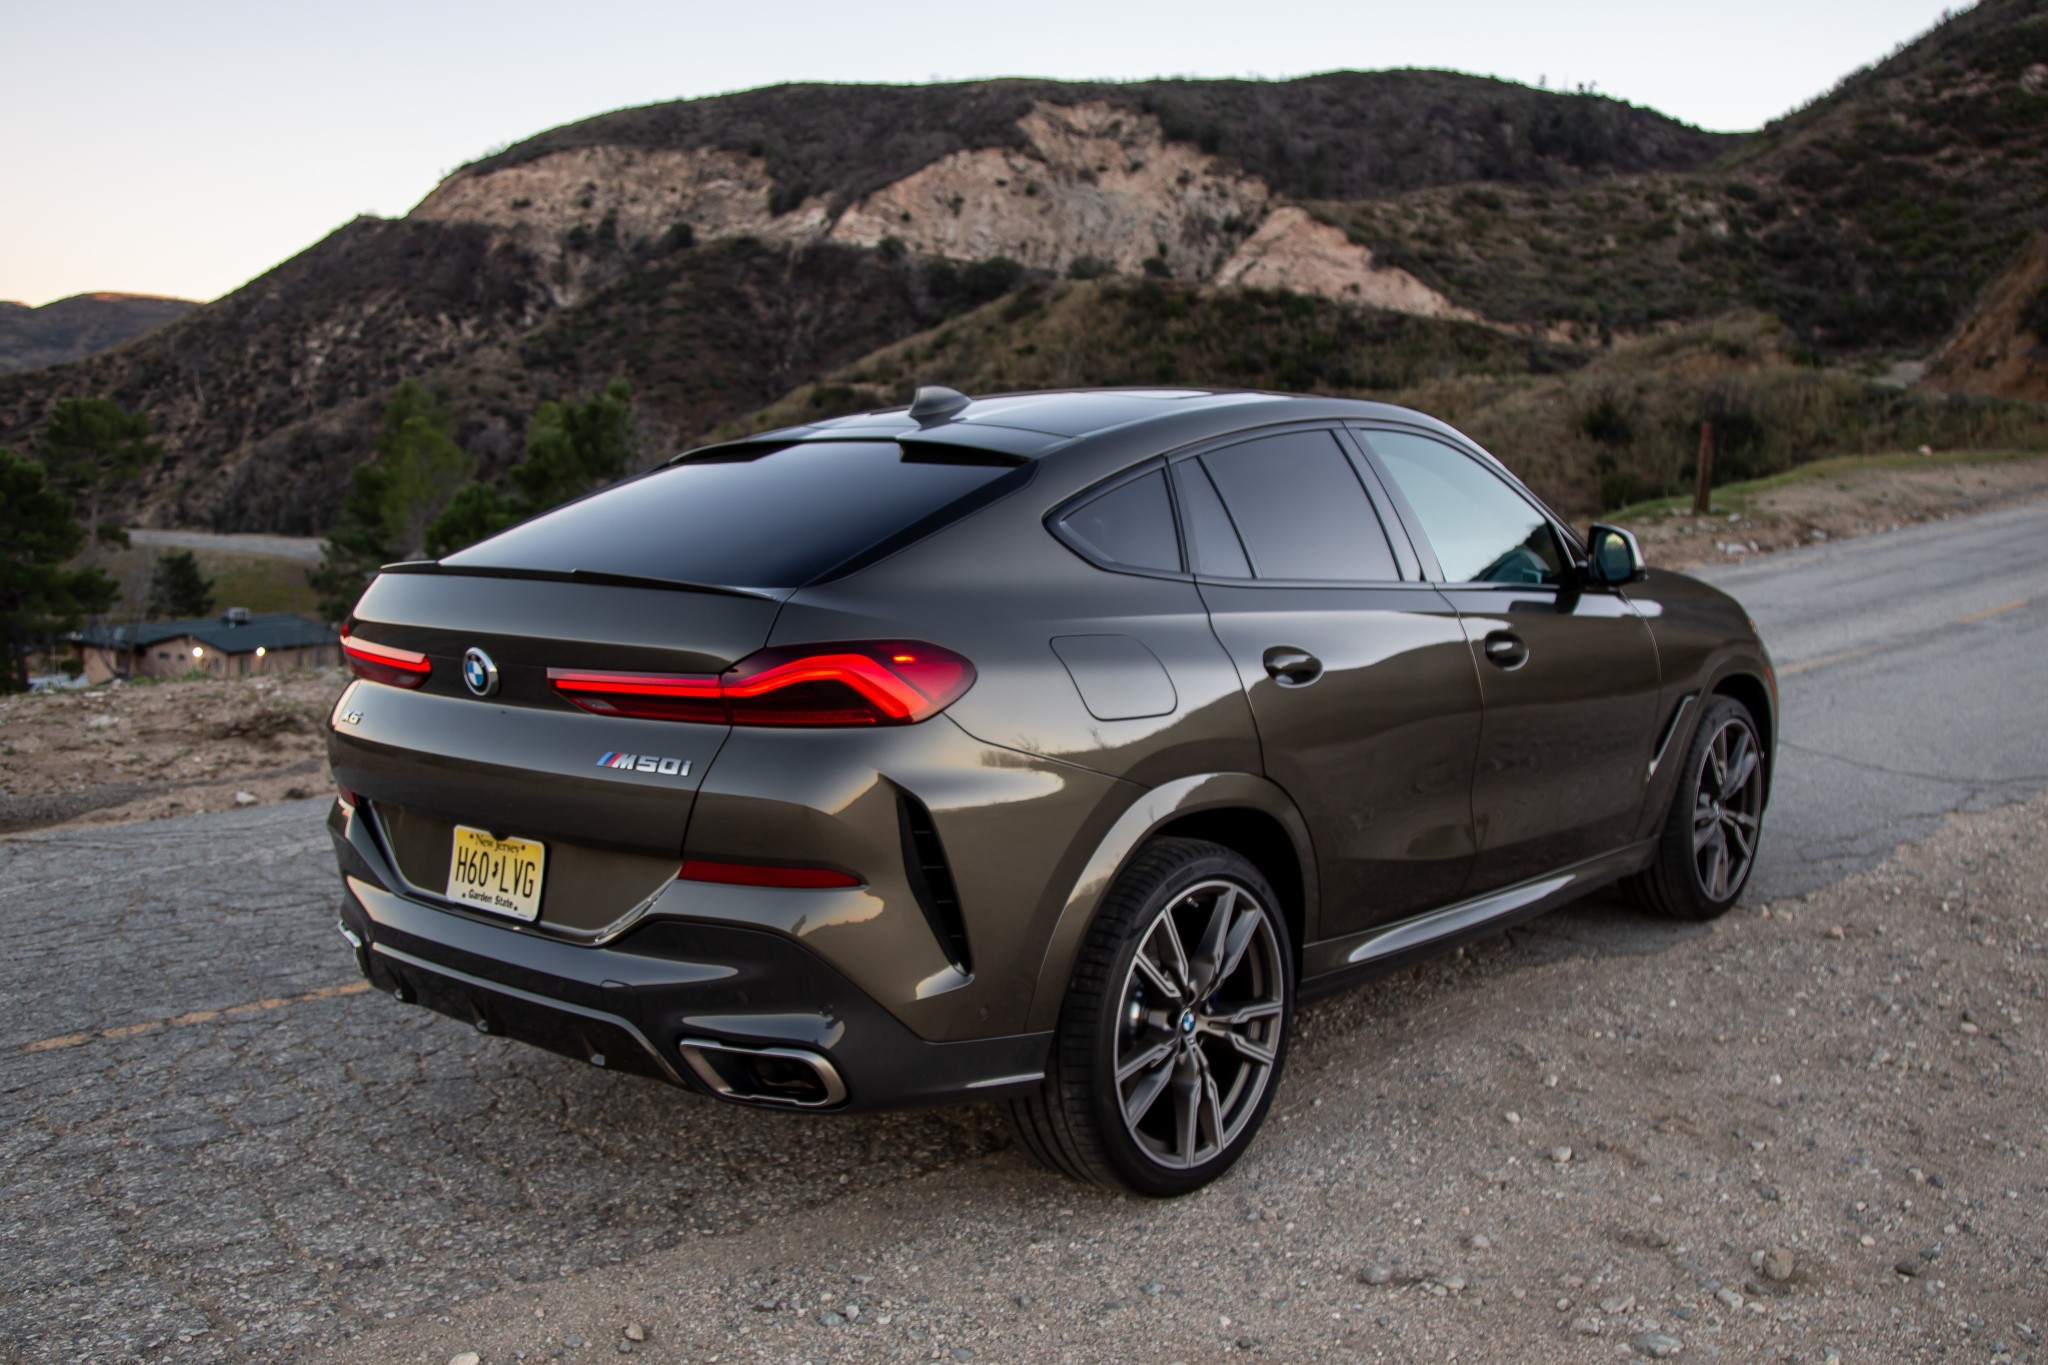 2020 BMW X6: 6 Things We Like (and 4 Not So Much)